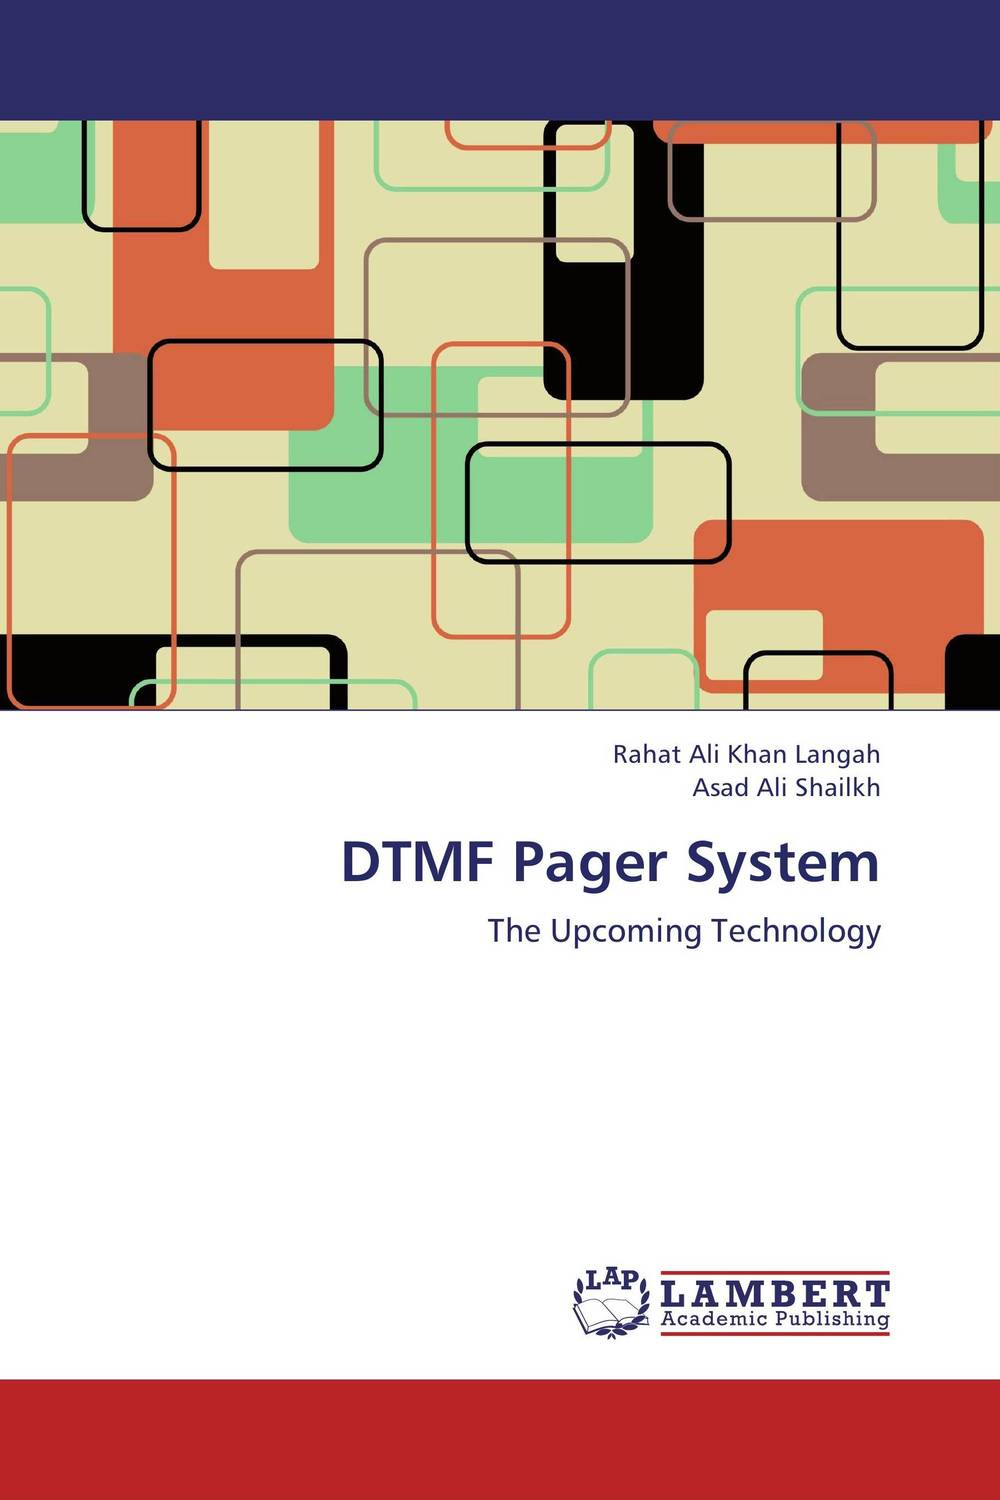 DTMF Pager System dtmf pager system